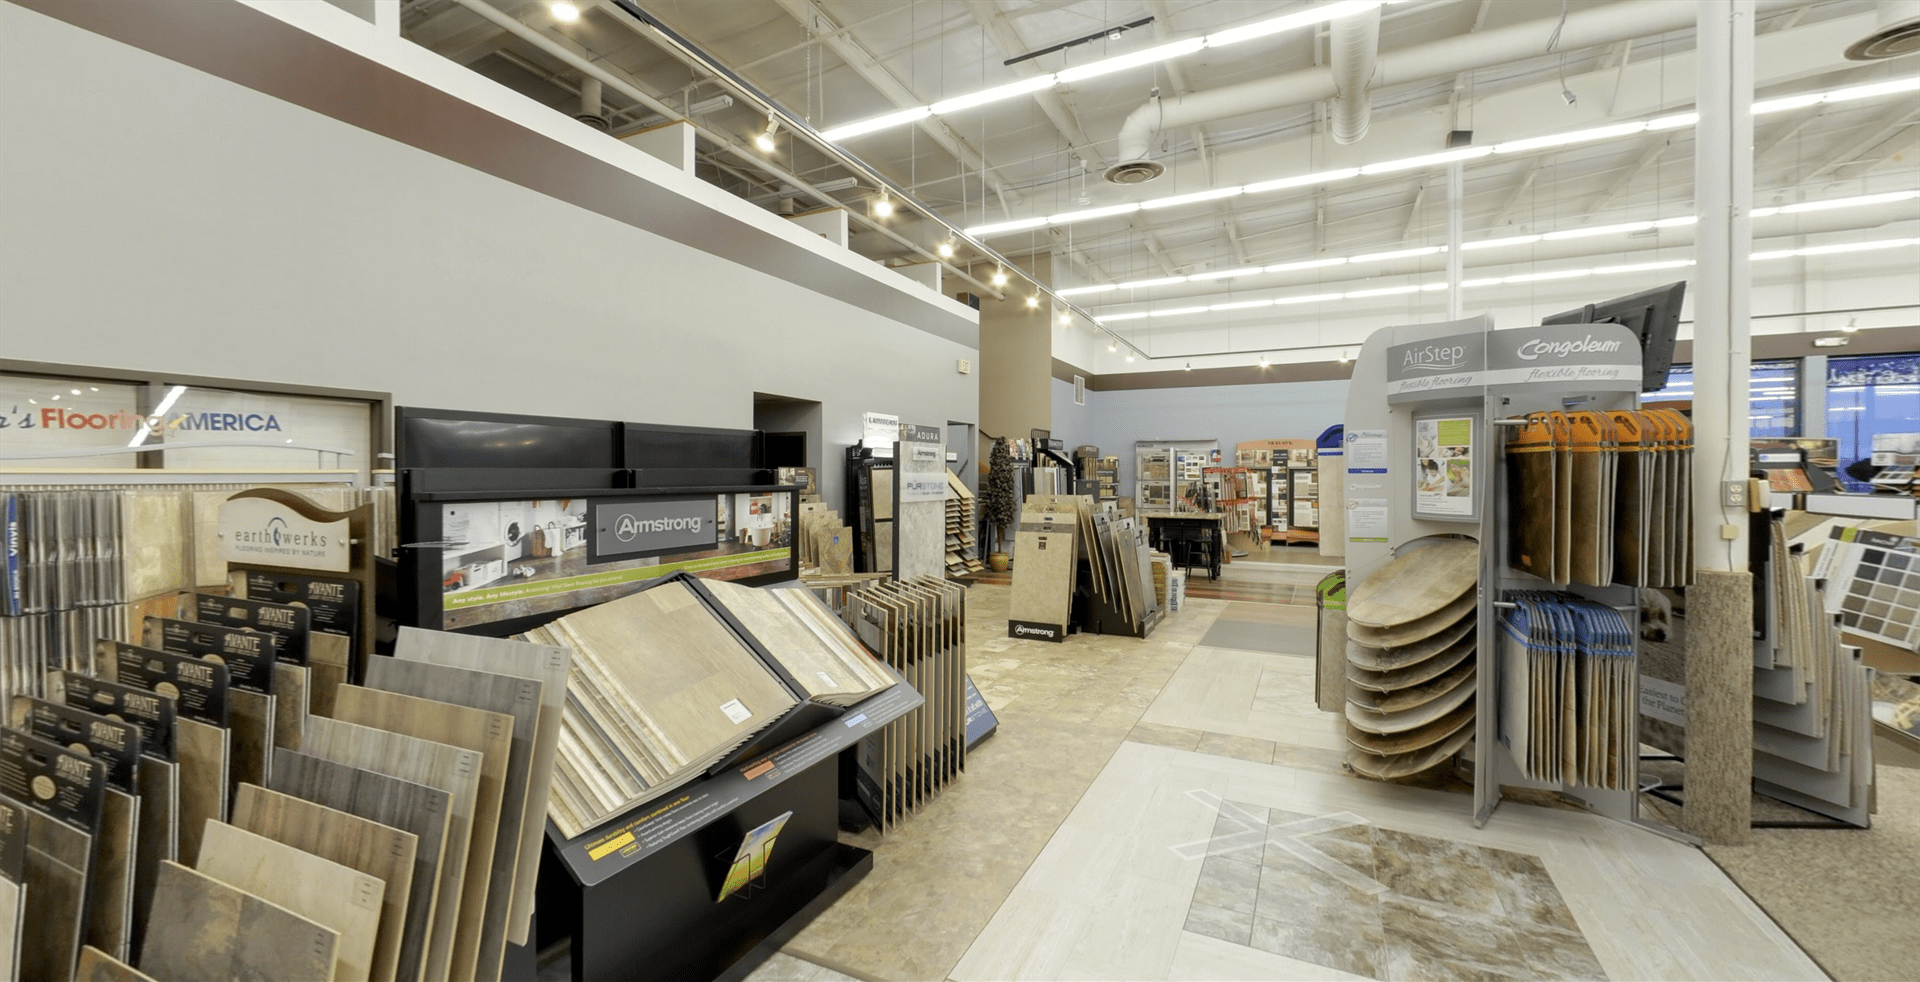 Armstrong flooring for your South Dakota business from Hiller Stores